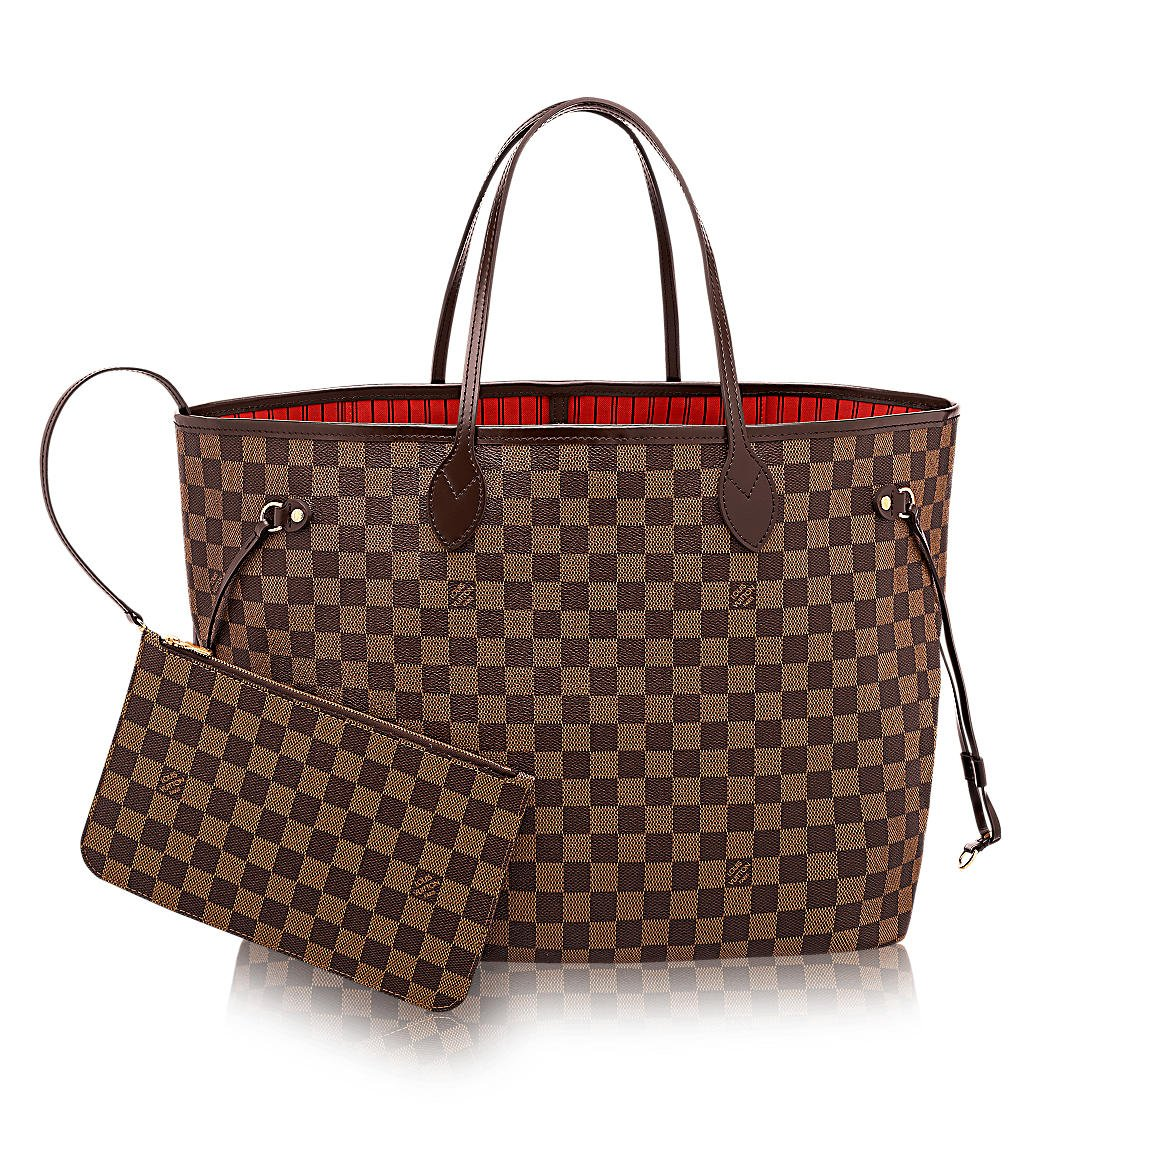 95f223bba8fe Carry It ALL  The Best Designer Tote Bags - PurseBop